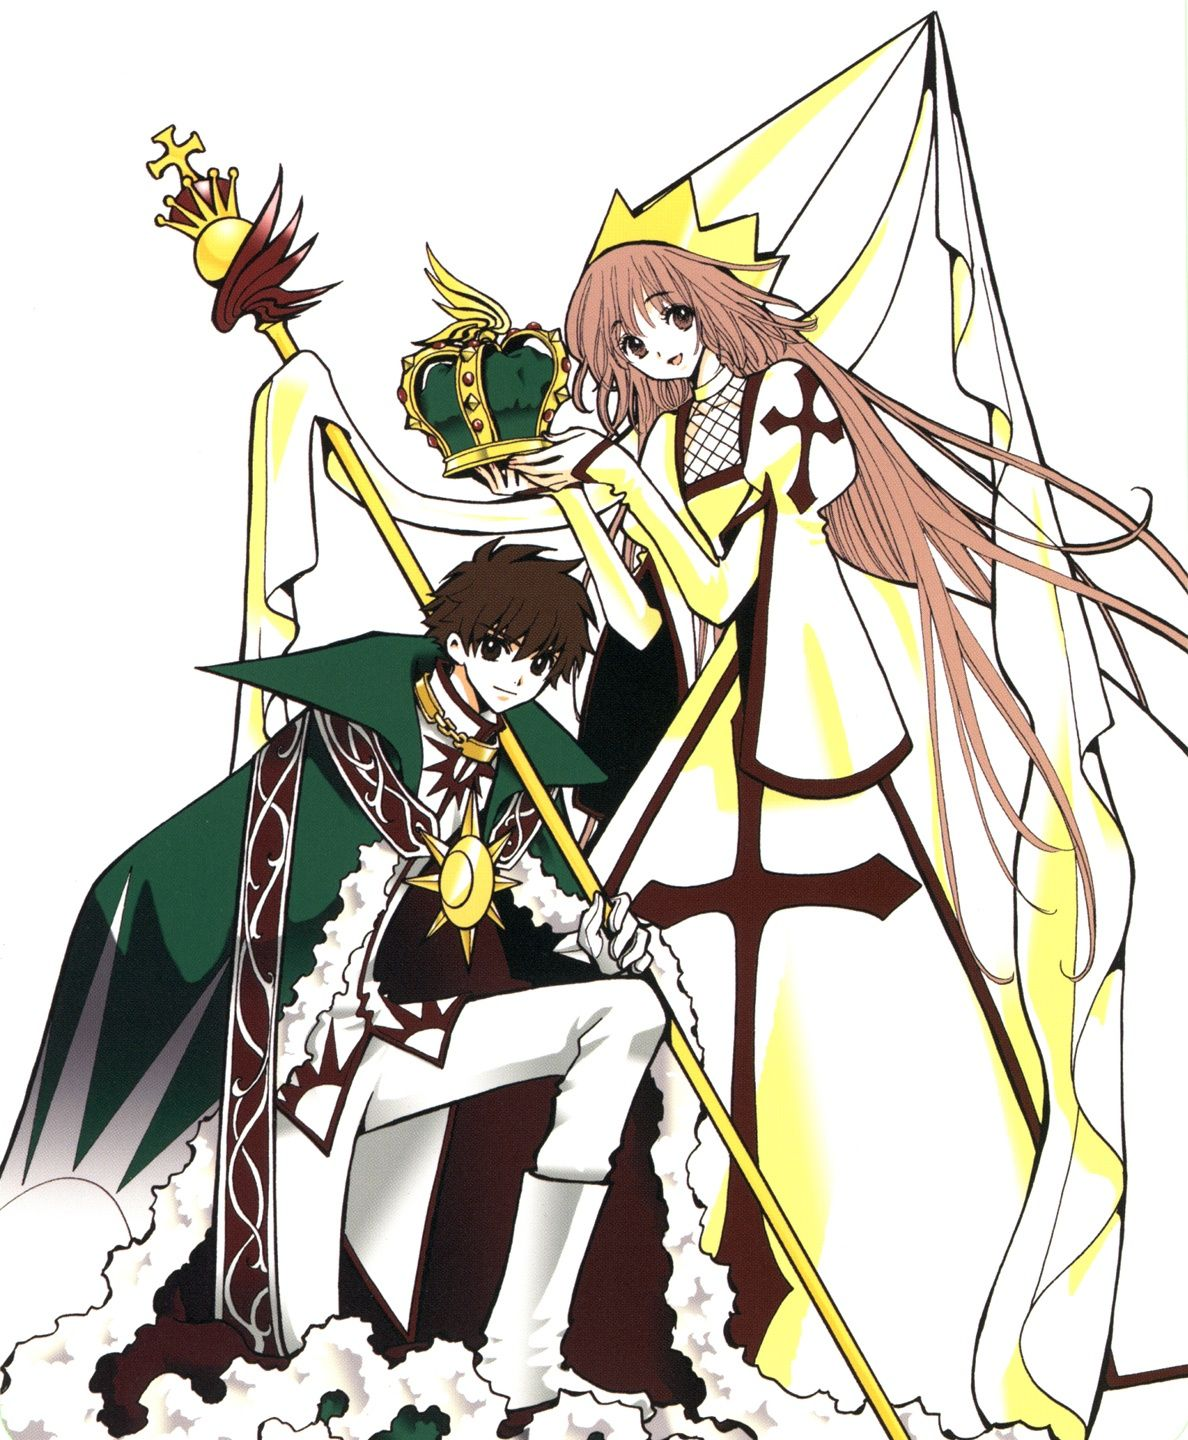 Tags: Tsubasa: RESERVoir CHRoNiCLE, CLAMP, CLAMP In